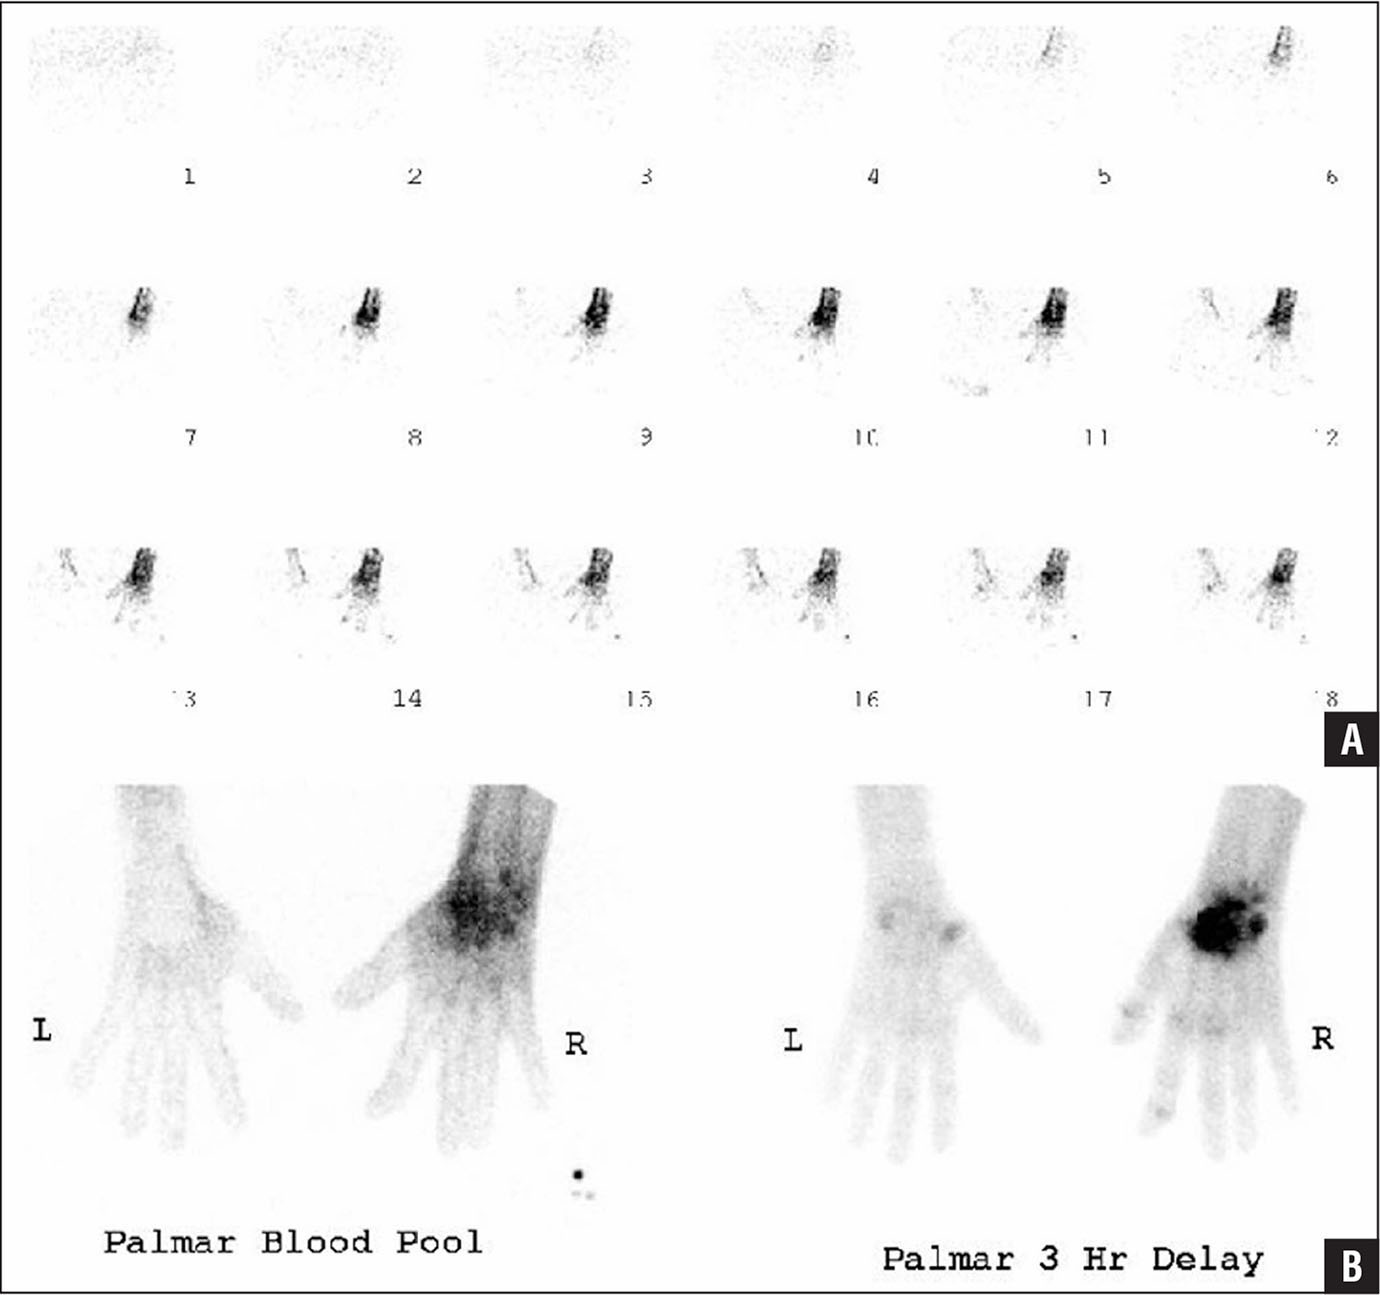 Complex regional pain syndrome. A patient presented with pain, hyperesthesia, and swelling in the right hand and wrist several months after injury. Blood flow images from technetium-labeled diphosphonate bone scan showing increased radiotracer perfusion to the right hand (A). Blood pool and delayed images revealing increased radionuclide activity, particularly involving the periarticular regions of the right wrist (B). Normal results were seen on radiographs.